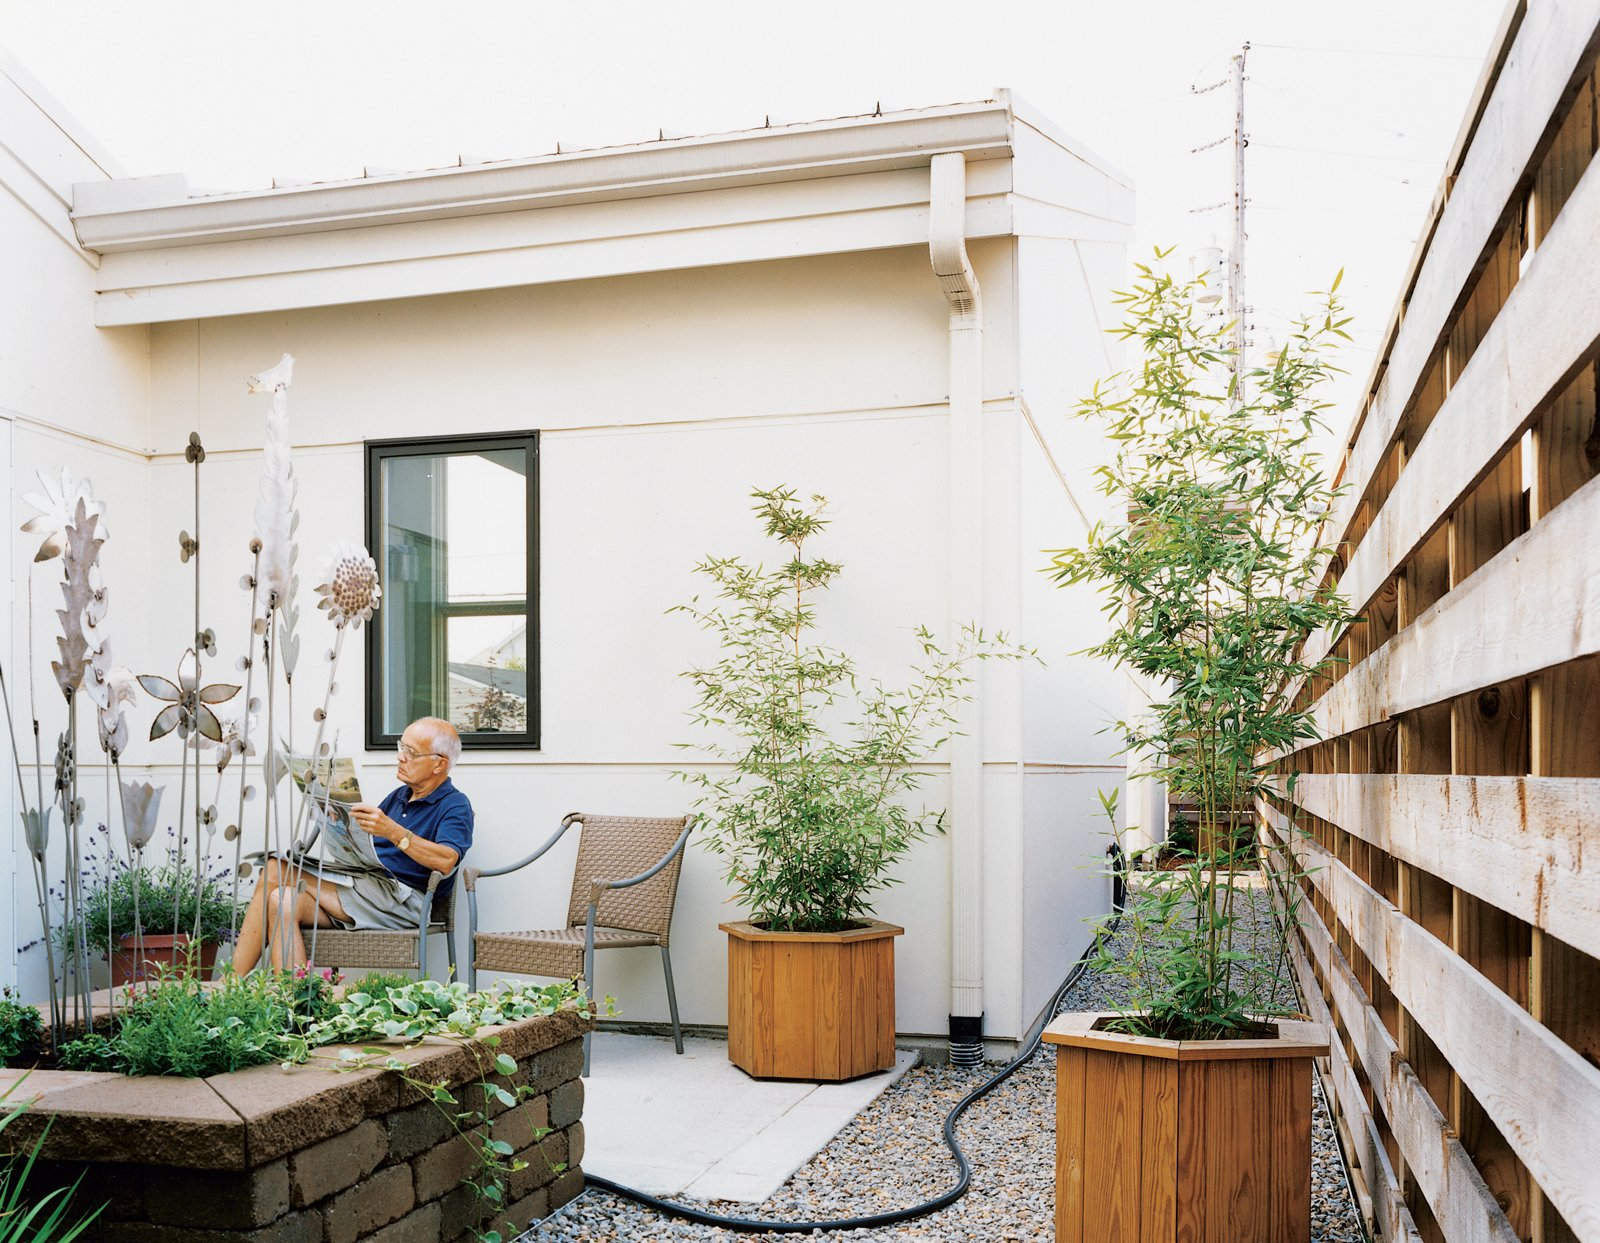 """The Brachers spend large amounts of time lounging in their courtyard spaces, as Peter demonstrates. """"Whatever room you're in on the first floor, you're looking at some type of garden. That was the whole idea of the project,"""" the architect explains.  Photo 4 of 4 in Suburban Flight"""